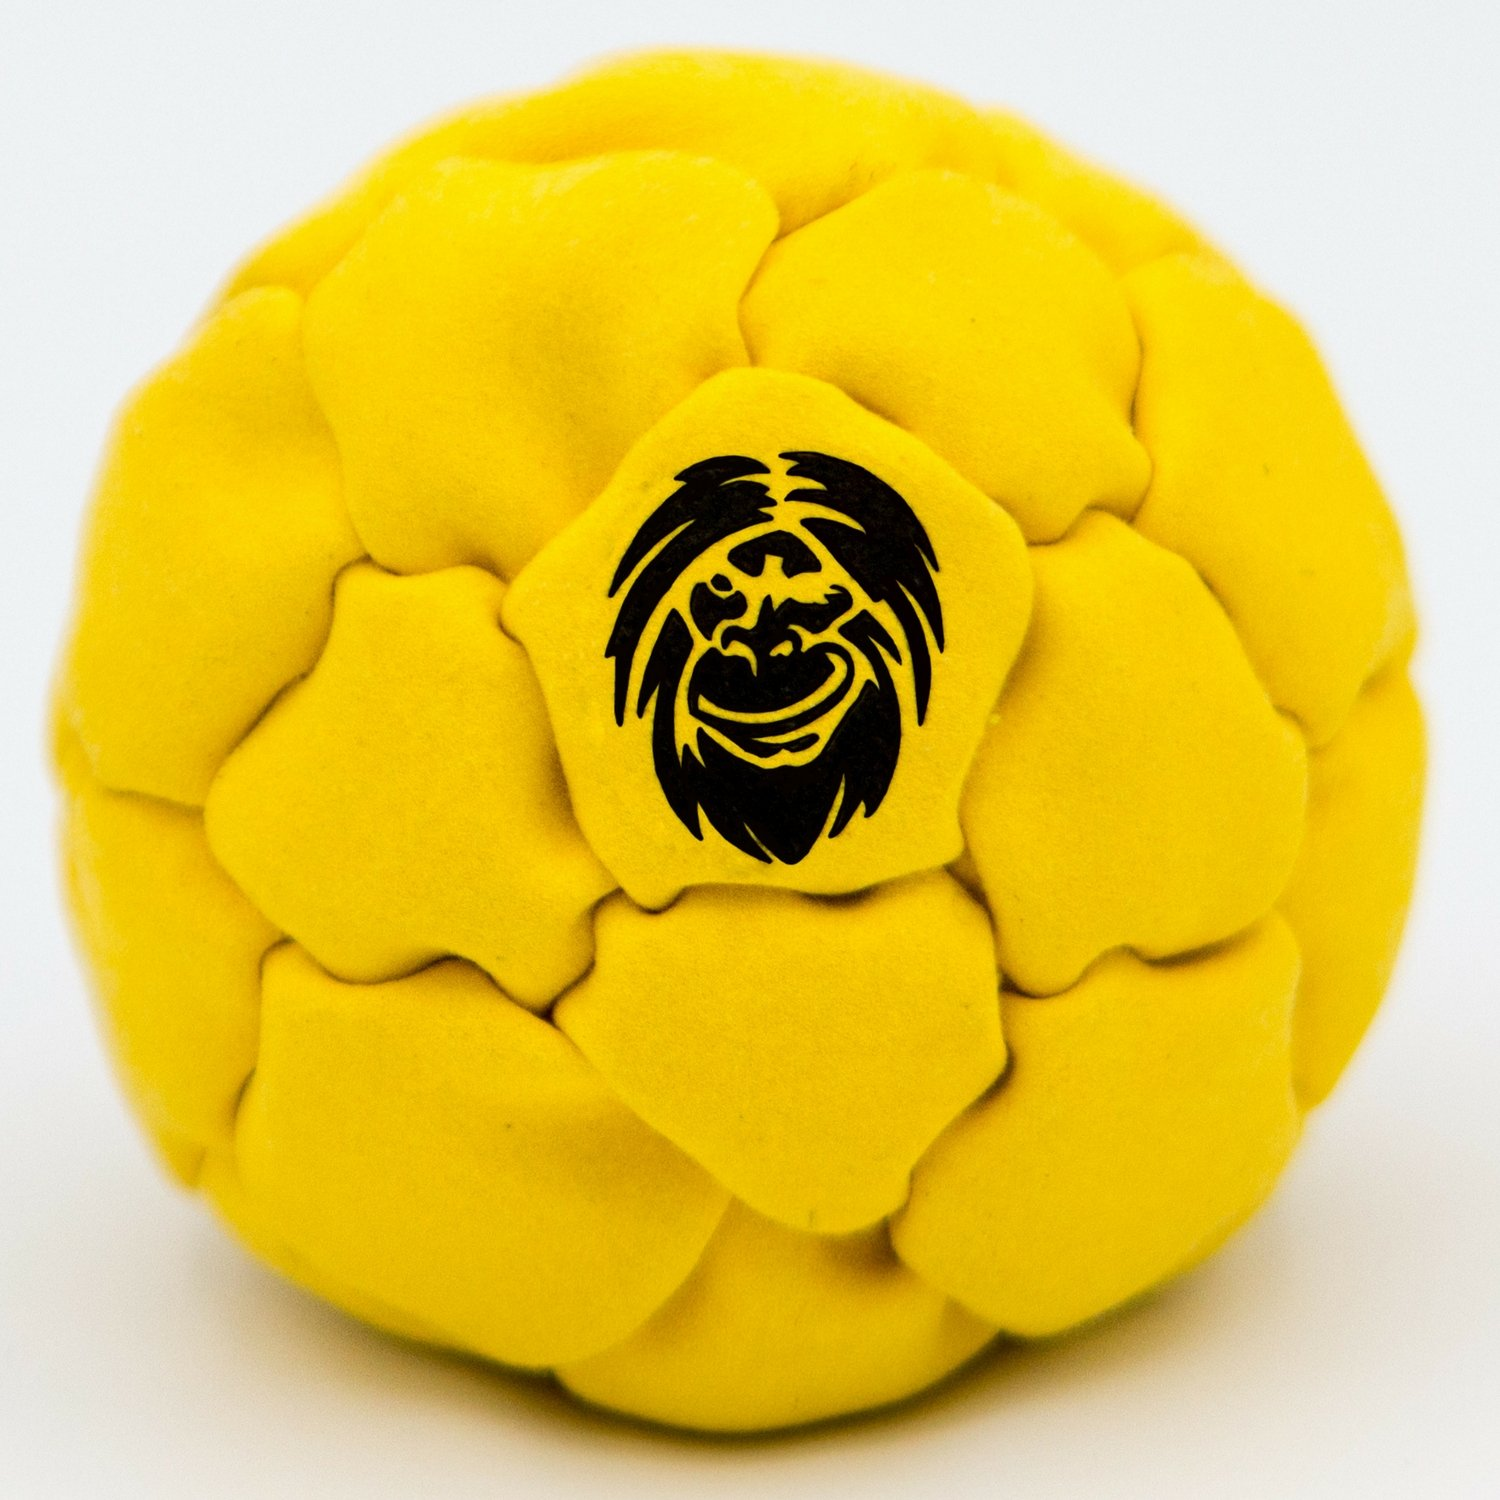 Best Hacky Sack and Footbag | No-Bust Stitching for Hard Kicking | 32 Panel Symmetry for Balance Tricks and Stalling | Professionally Hand-Stitched with Suede Material (Yellow, Plastic/Metal Fill)